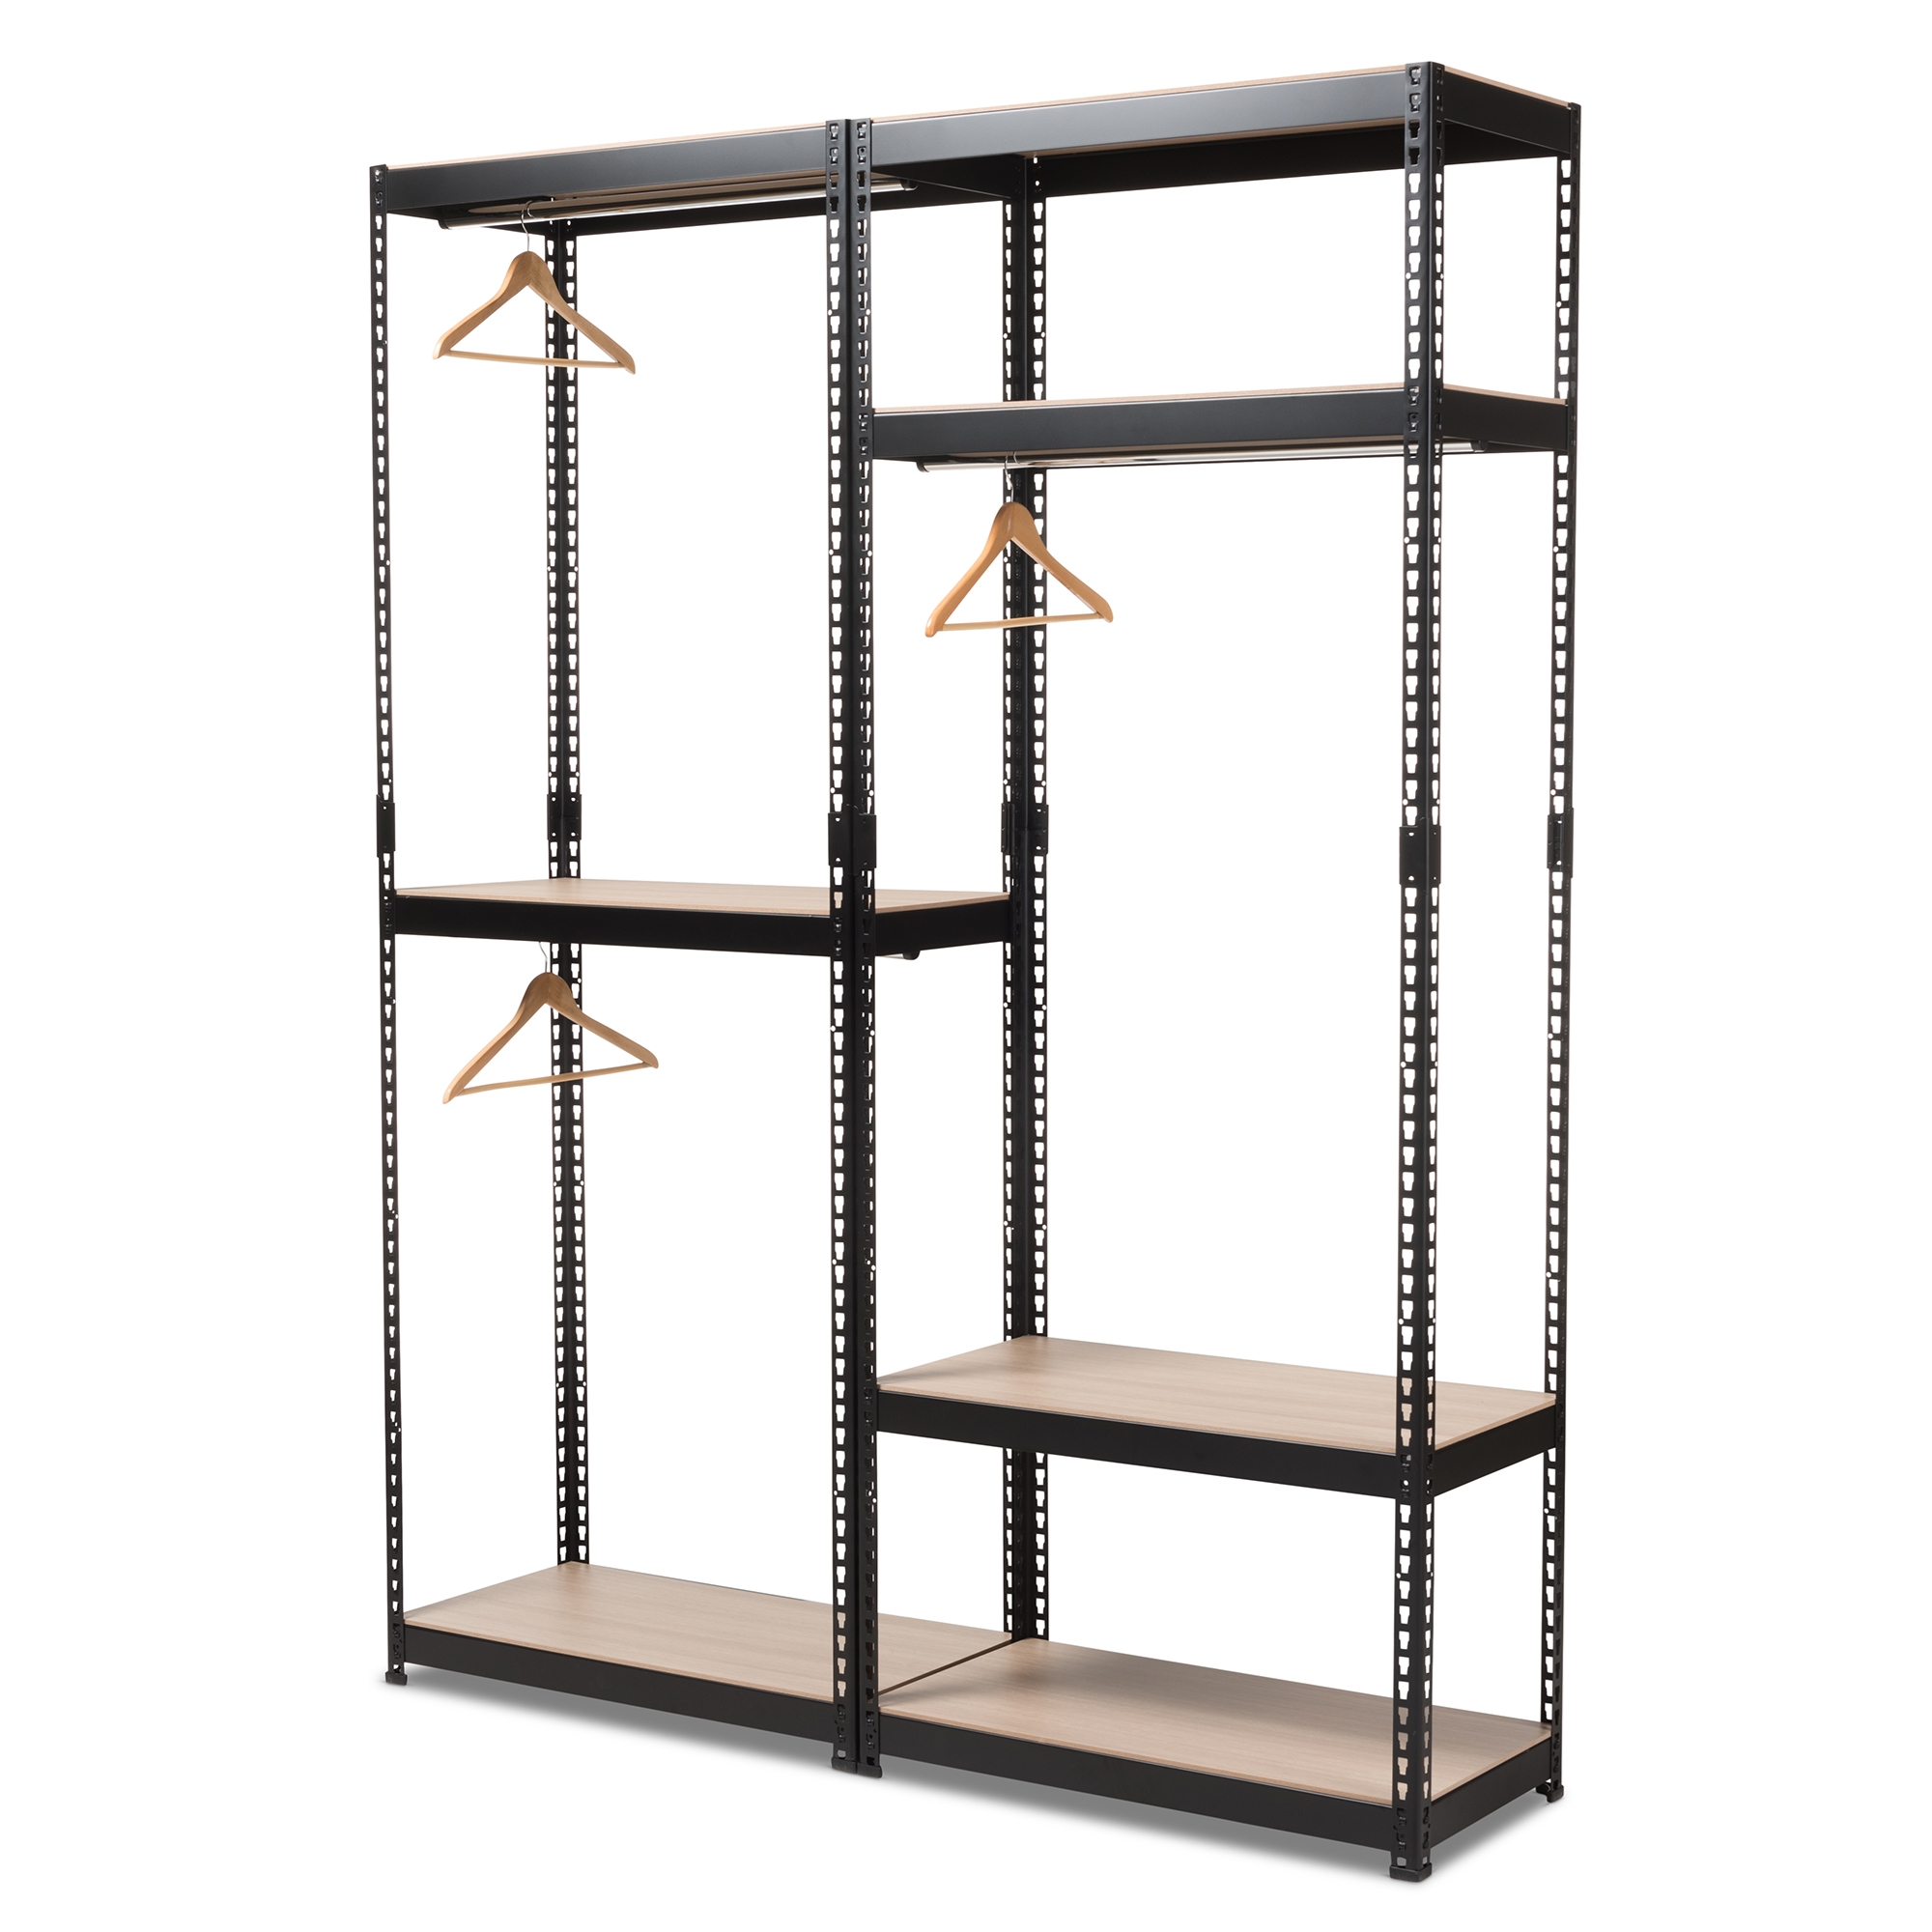 Etonnant ... Baxton Studio Gavin Black Metal 7 Shelf Closet Storage Racking  Organizer   BH06/BH09 ...